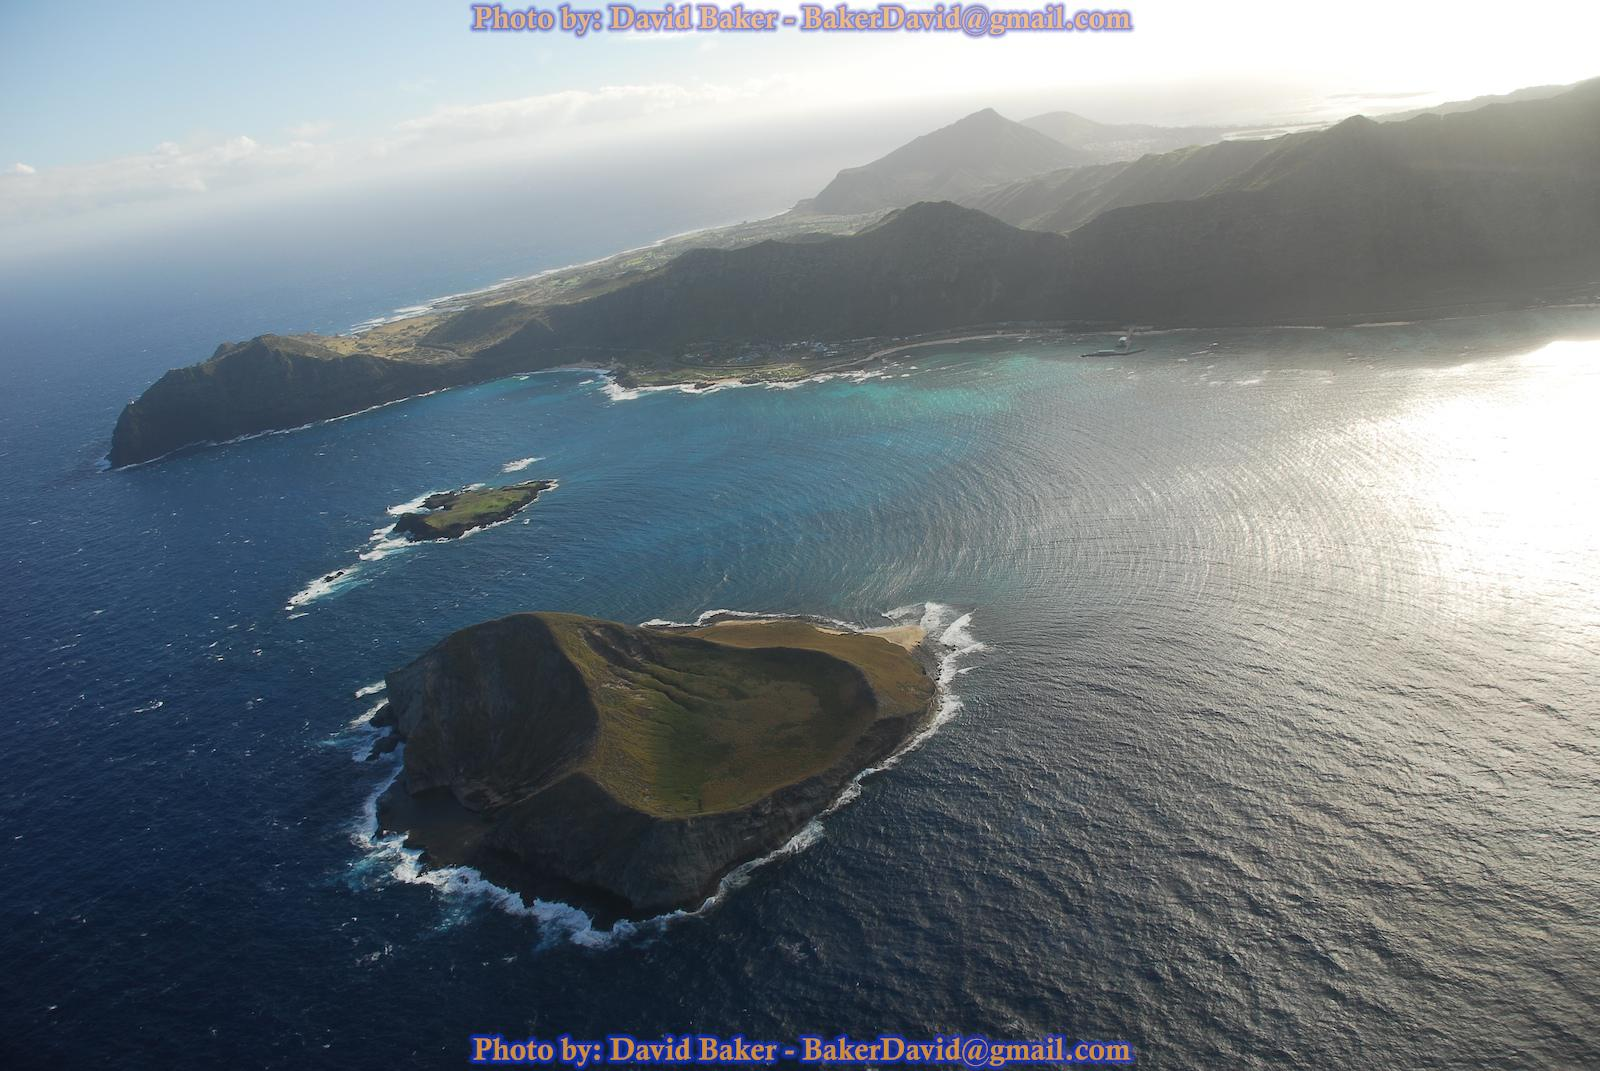 """Oahu Windward (East) Shore<br />Photo <a href=""""//creativecommons.org/licences/by-nd/3.0/"""" class=""""cc-small"""" target=""""_blank""""><img typeof=""""foaf:Image"""" class=""""image-style-none"""" src=""""//i.creativecommons.org/l/by-nd/3.0/80x15.png"""" width=""""80px"""" height=""""15px"""" alt=""""Creative Commons Licence"""" /></a> <a href=""""https://www.flickr.com/photos/49672978@N00/360458953"""">David Baker</a>"""